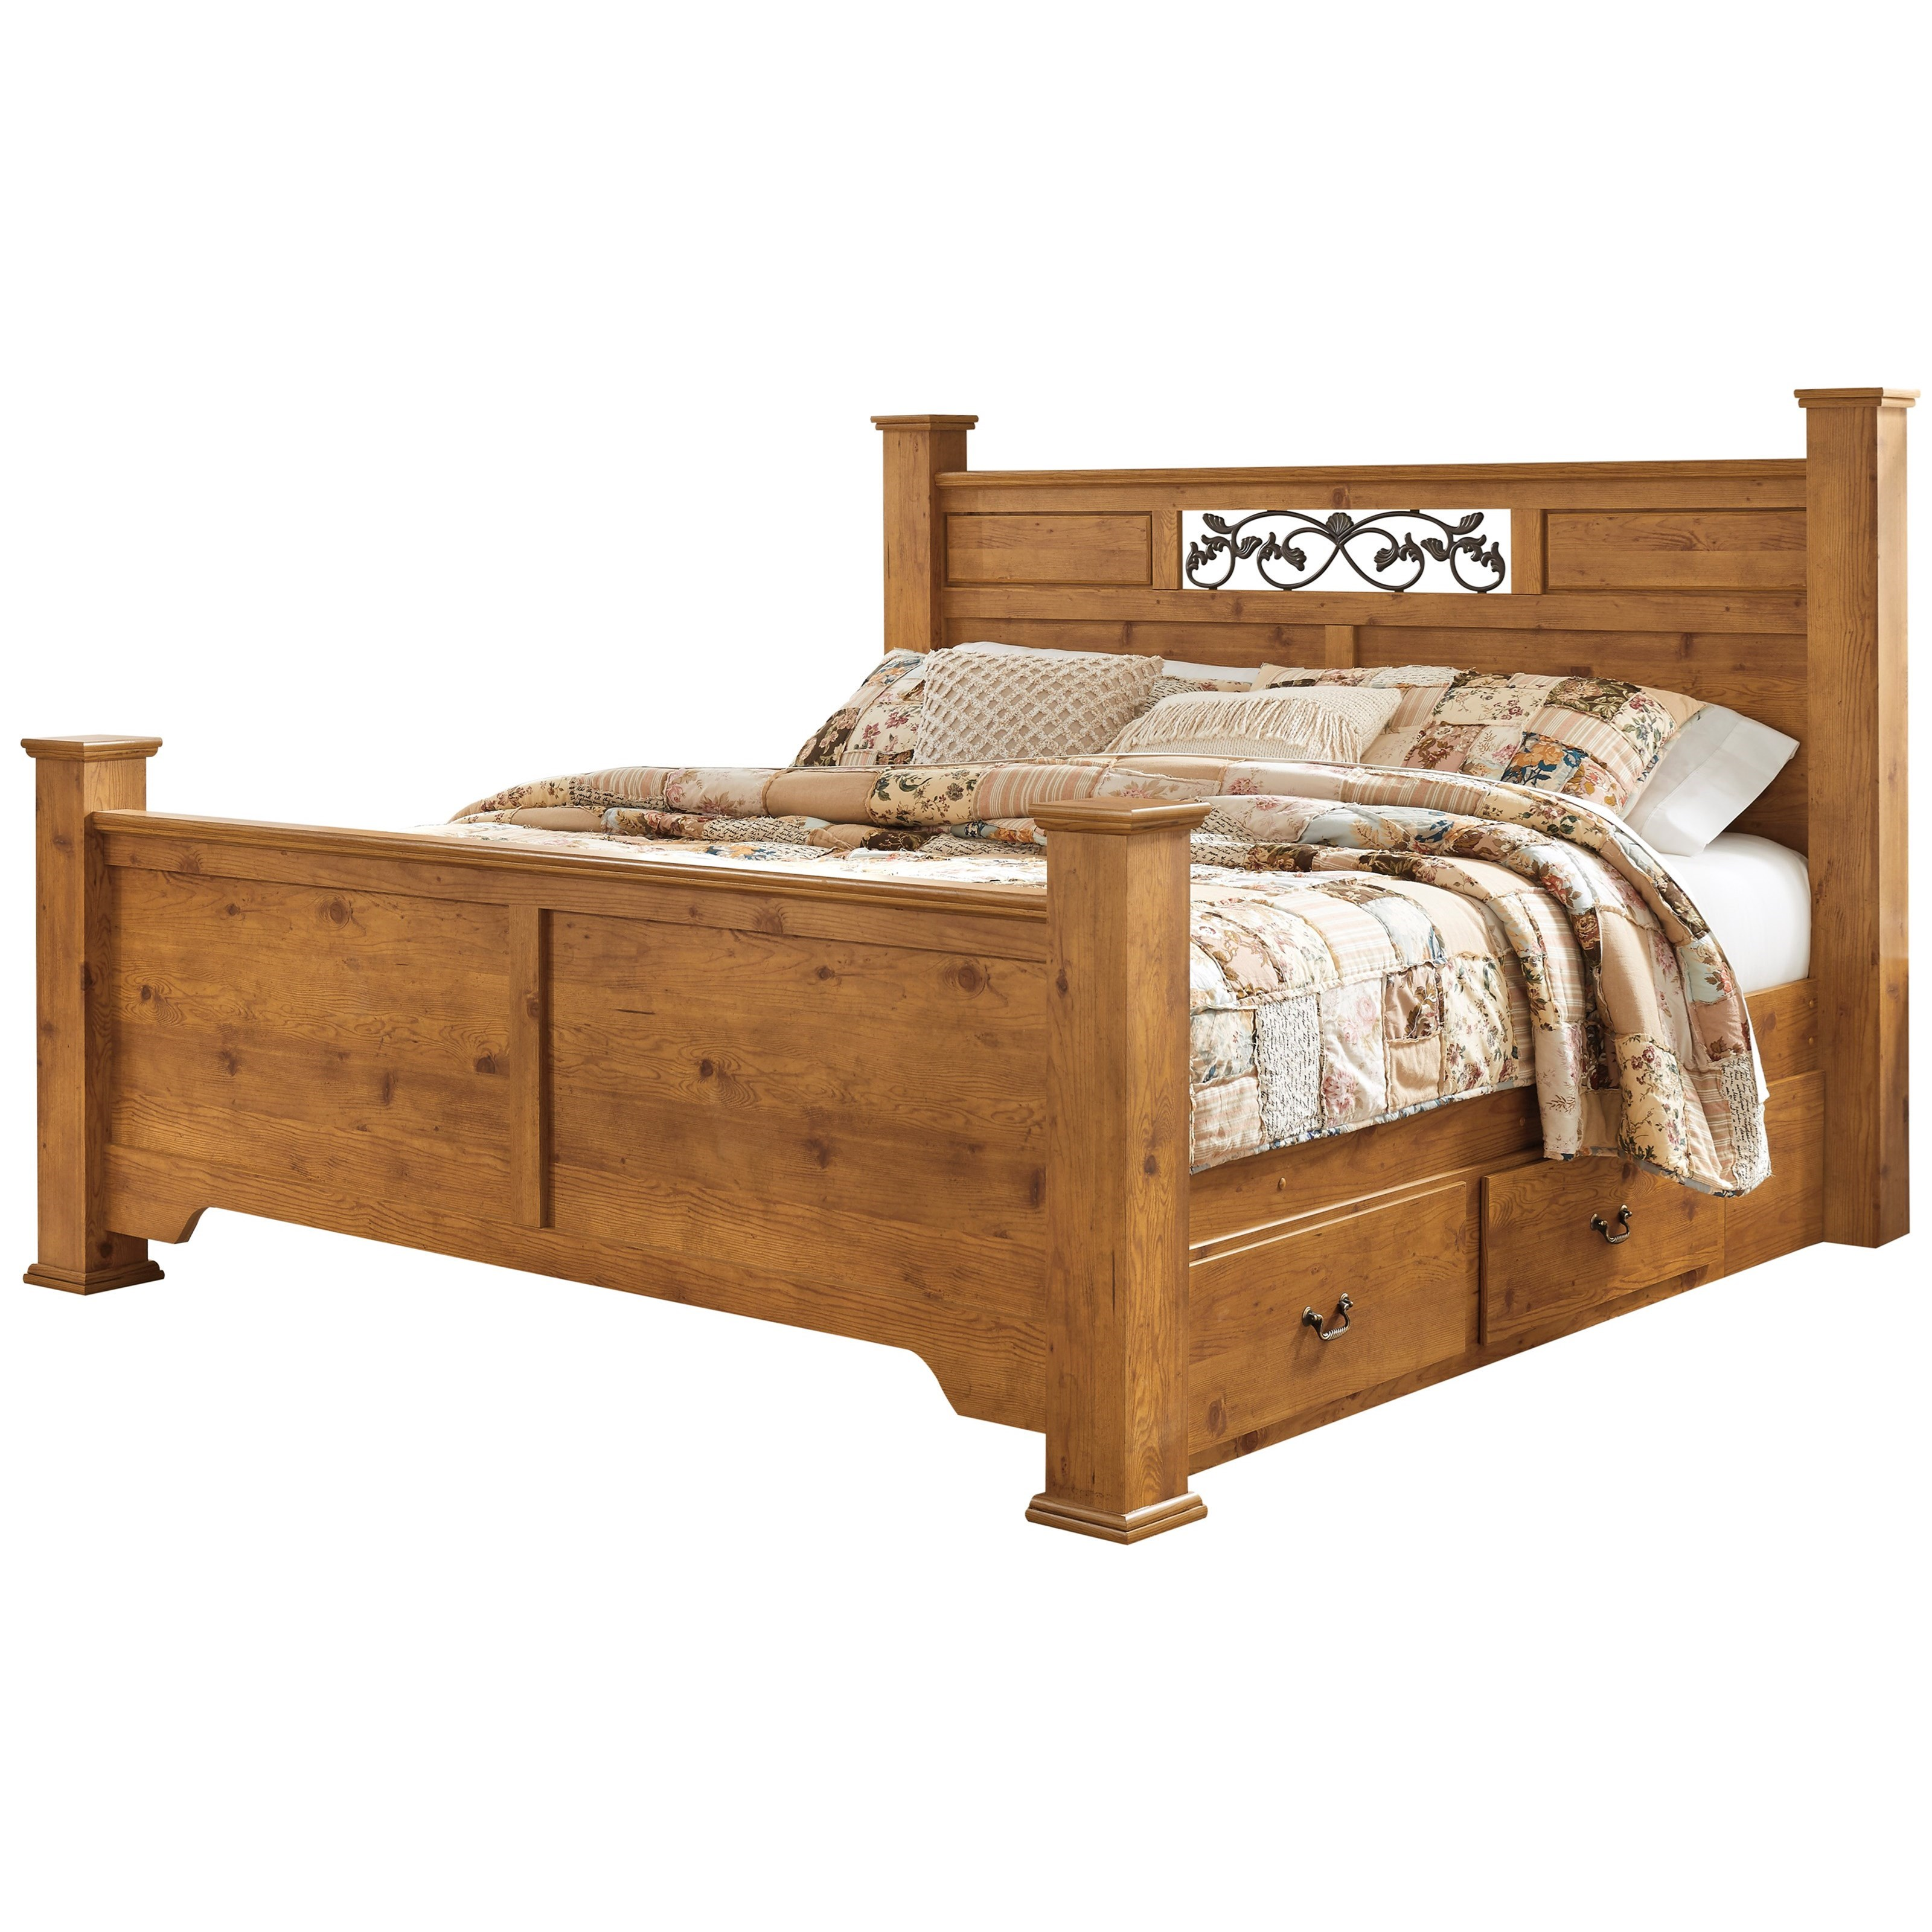 Signature Design By Ashley Bittersweet King Poster Panel Bed With Under Bed Storage Furniture